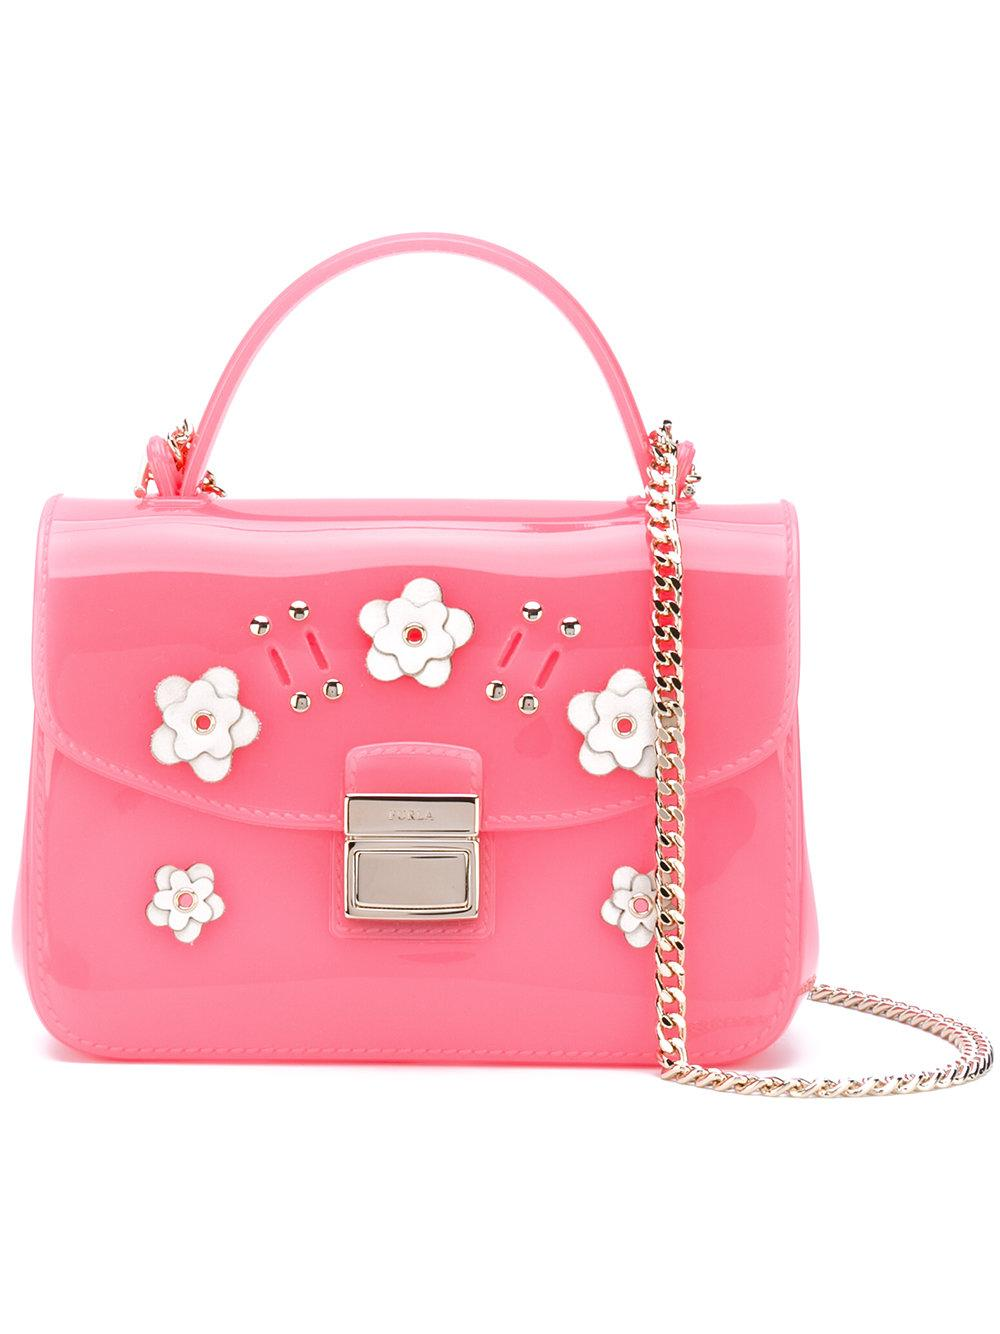 Lyst - Furla Floral Appliquu00e9 Shoulder Bag In Pink